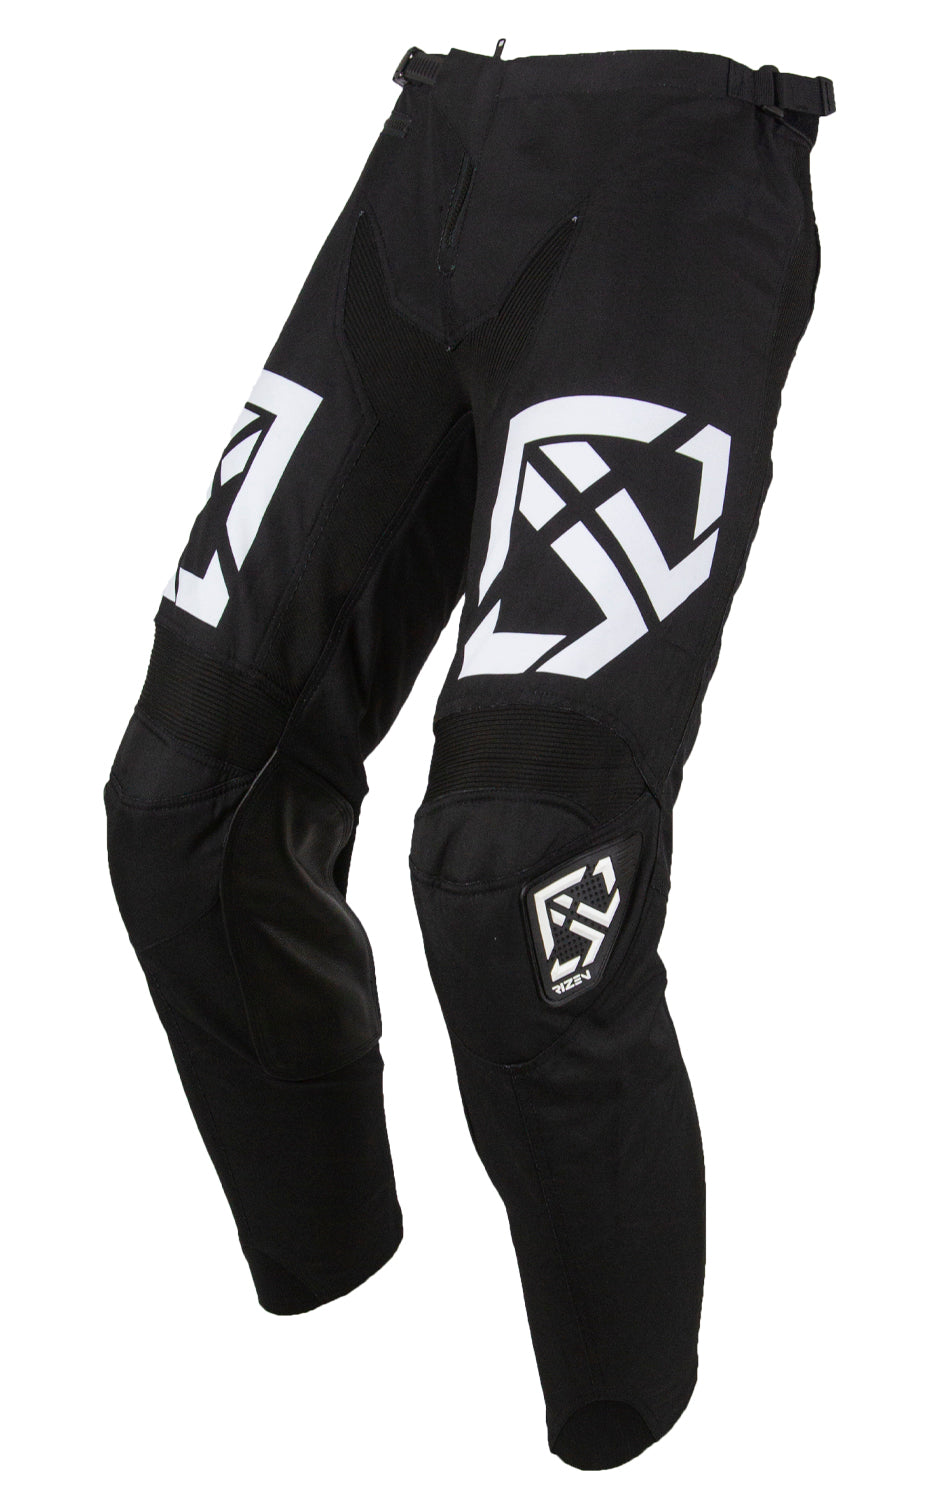 PHAZE 1 PANTS YOUTH - MOTO - BLACK/WHITE